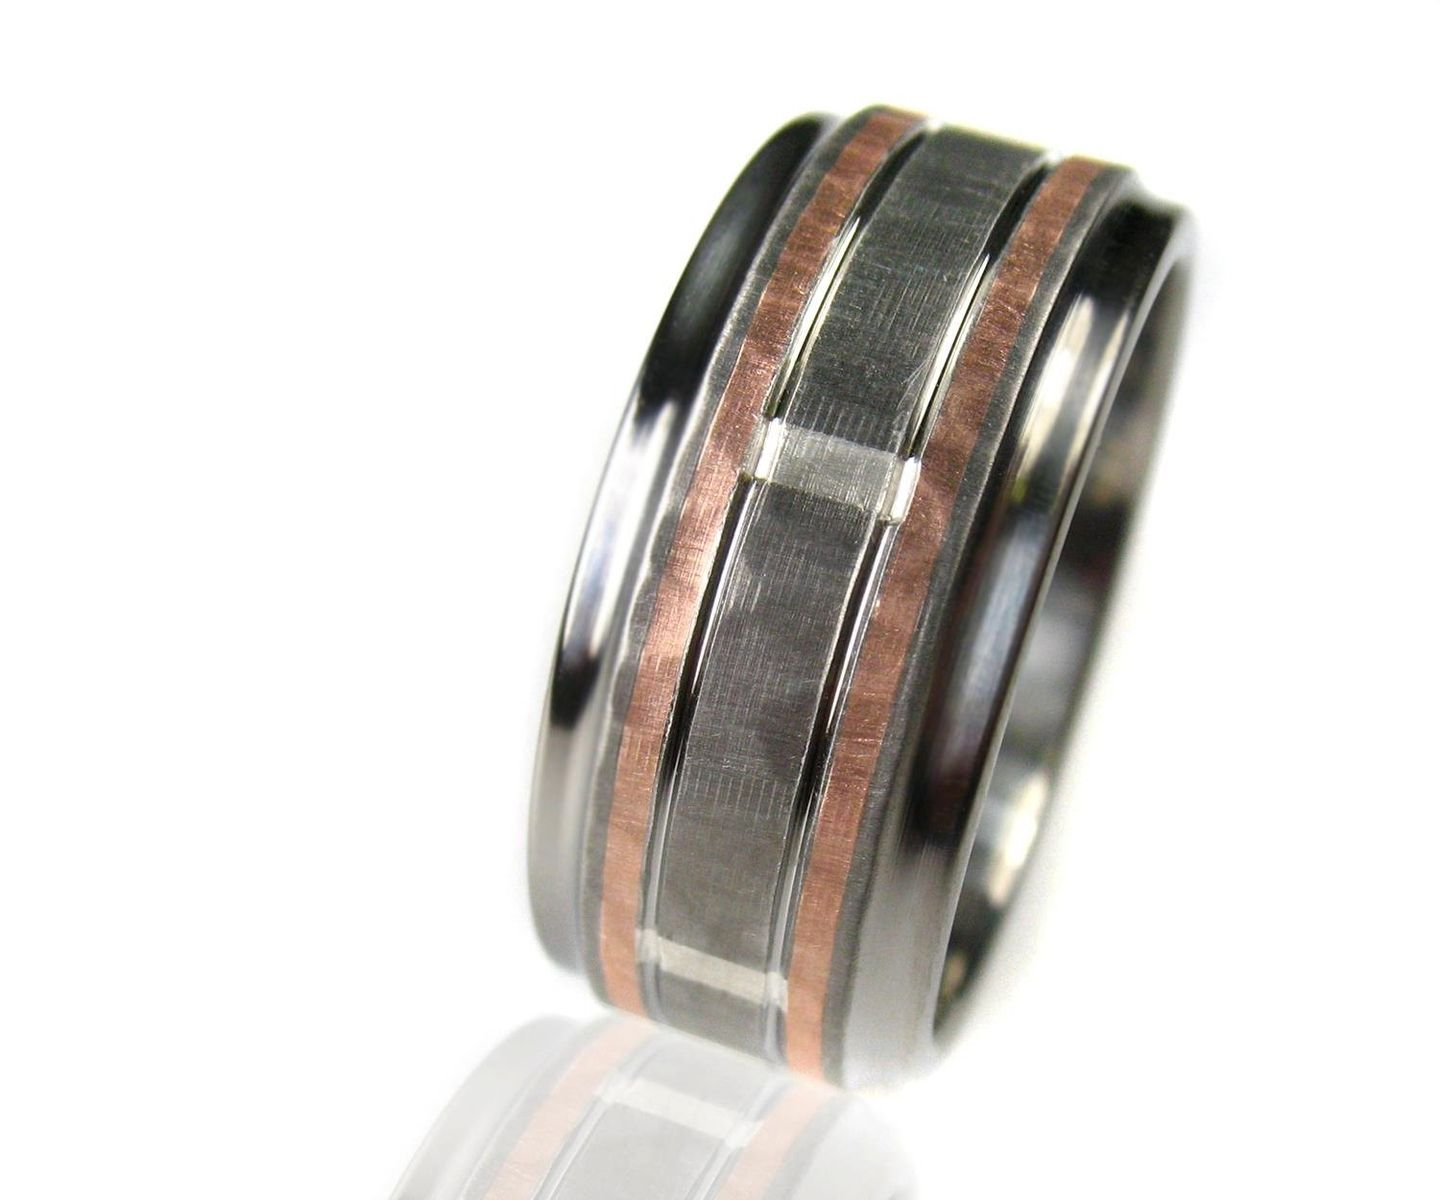 Buy A Custom Hammered Titanium Silver Rose Gold Wedding Ring Made To Order From Spexton Jewelry